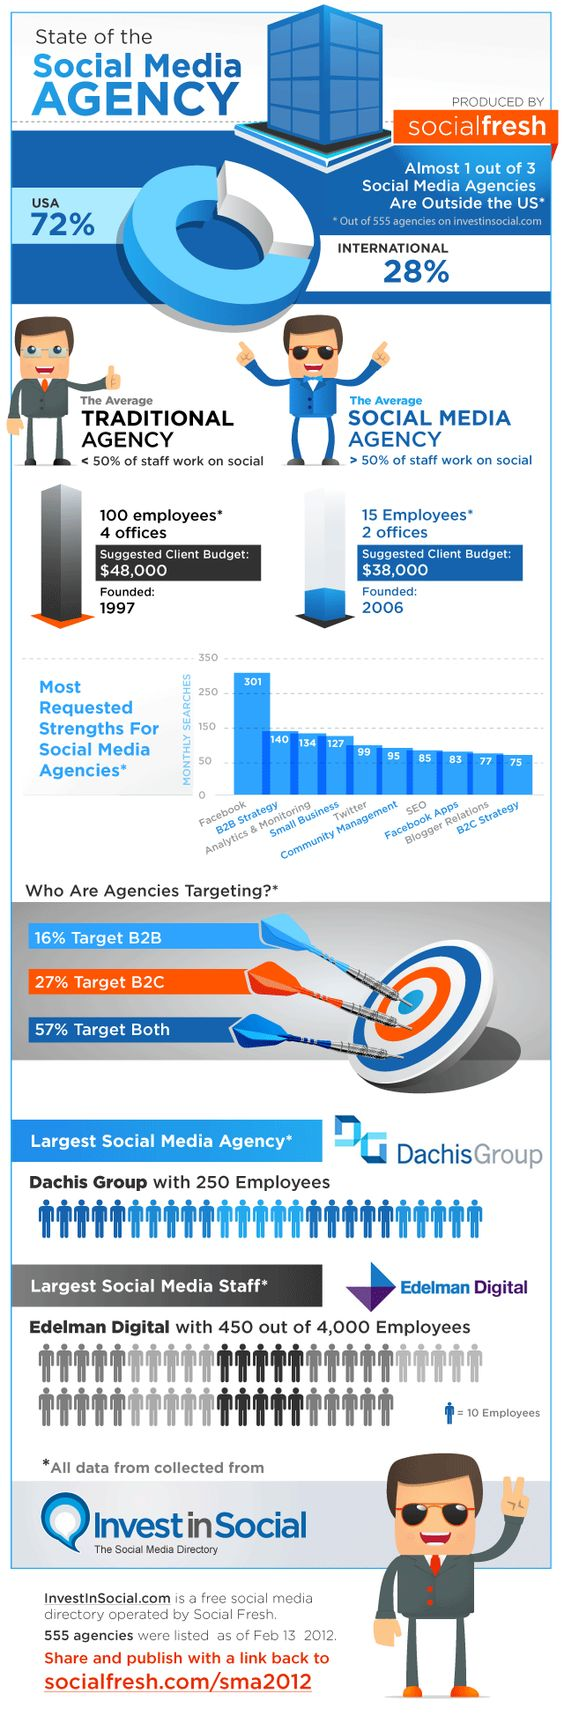 State Of The Social Media Agency, Infographic by InvestInSocial.com, on Social Fresh